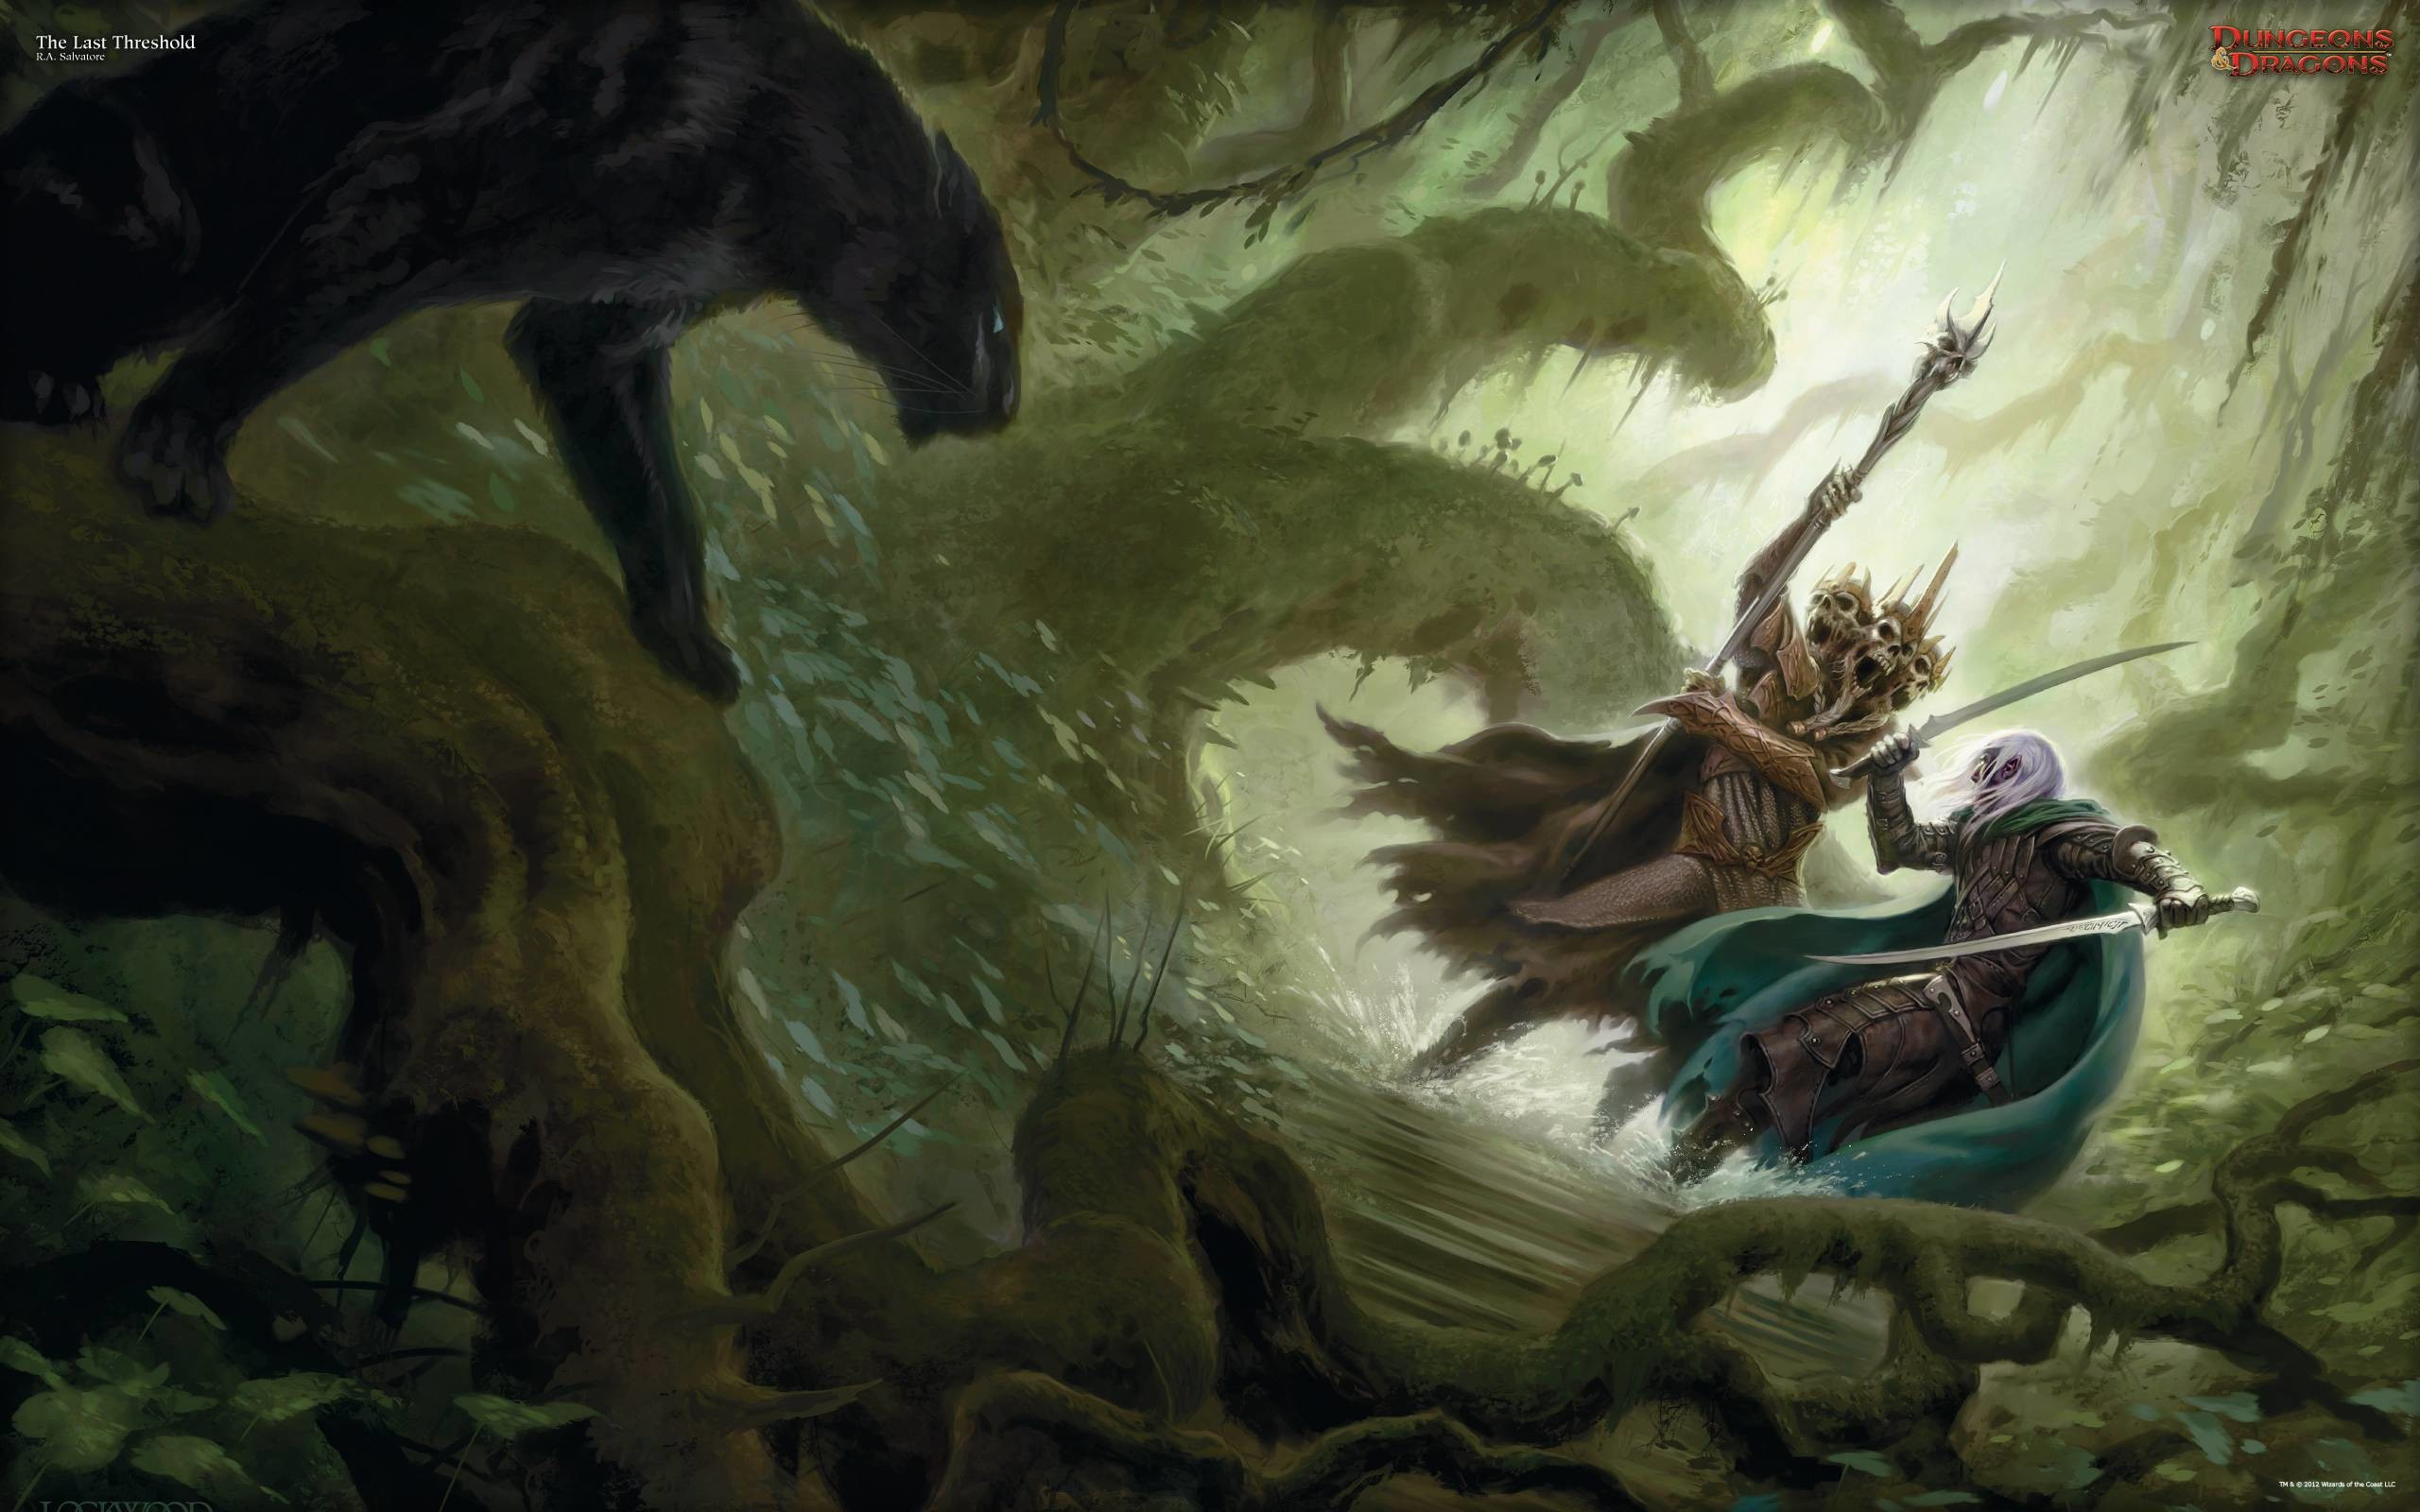 Free Download Wallpaper 3d Graphic Drizzt Wallpaper 72 Images